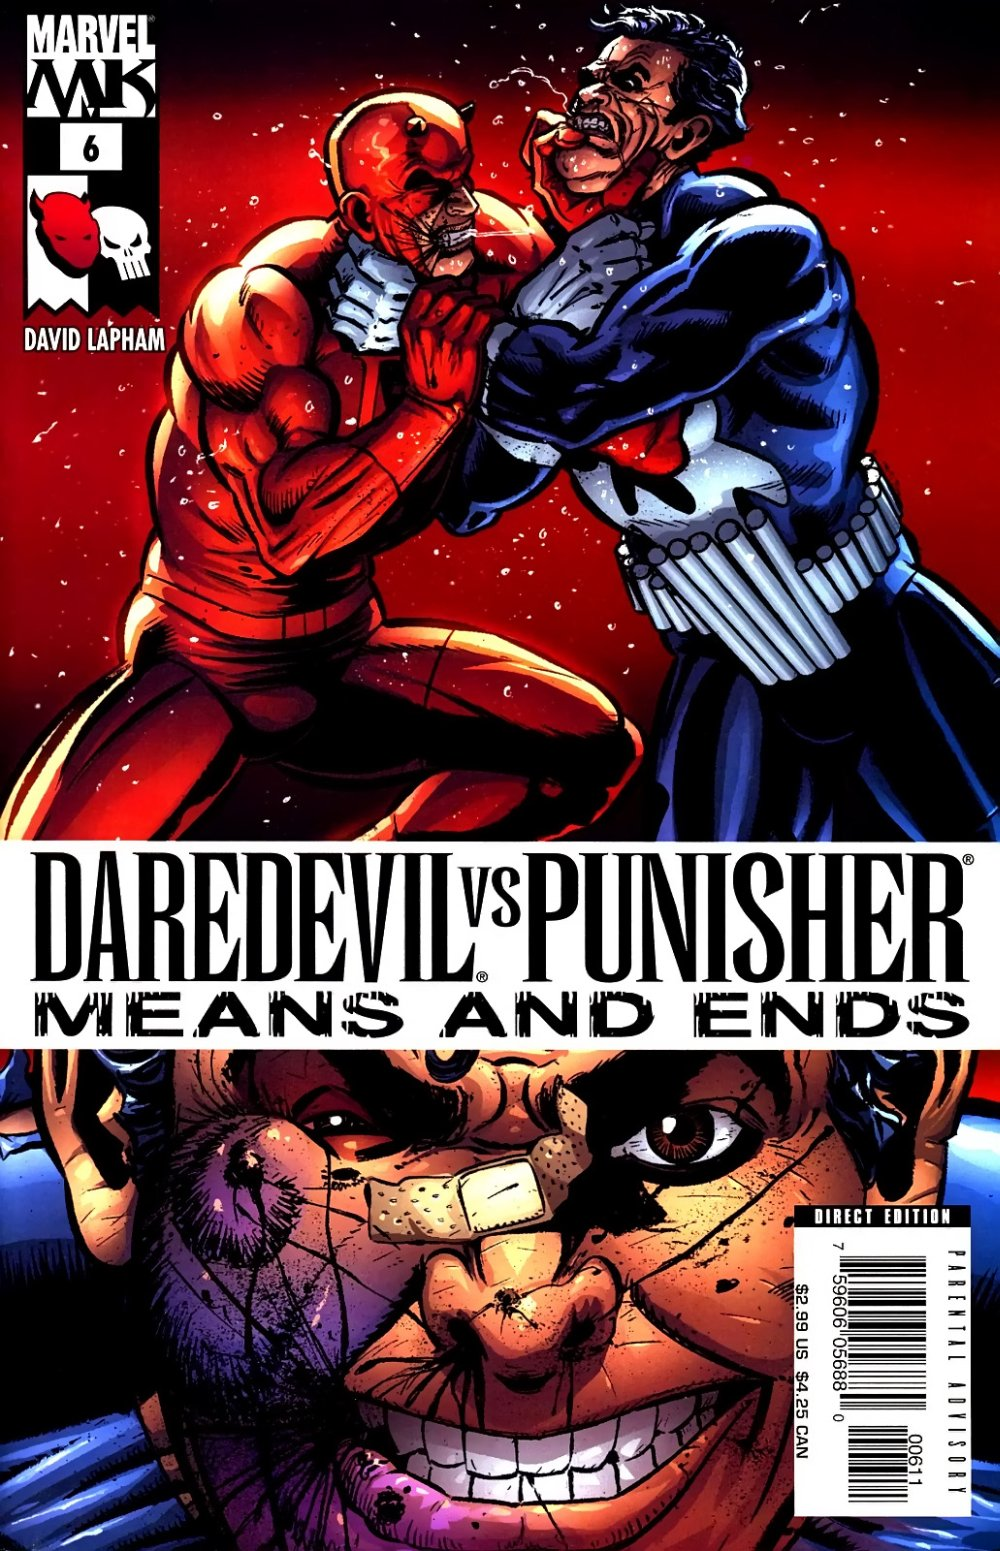 Daredevil- Vs Punisher- Means And Ends [Marvel Knights] Mini 1 0006.jpg